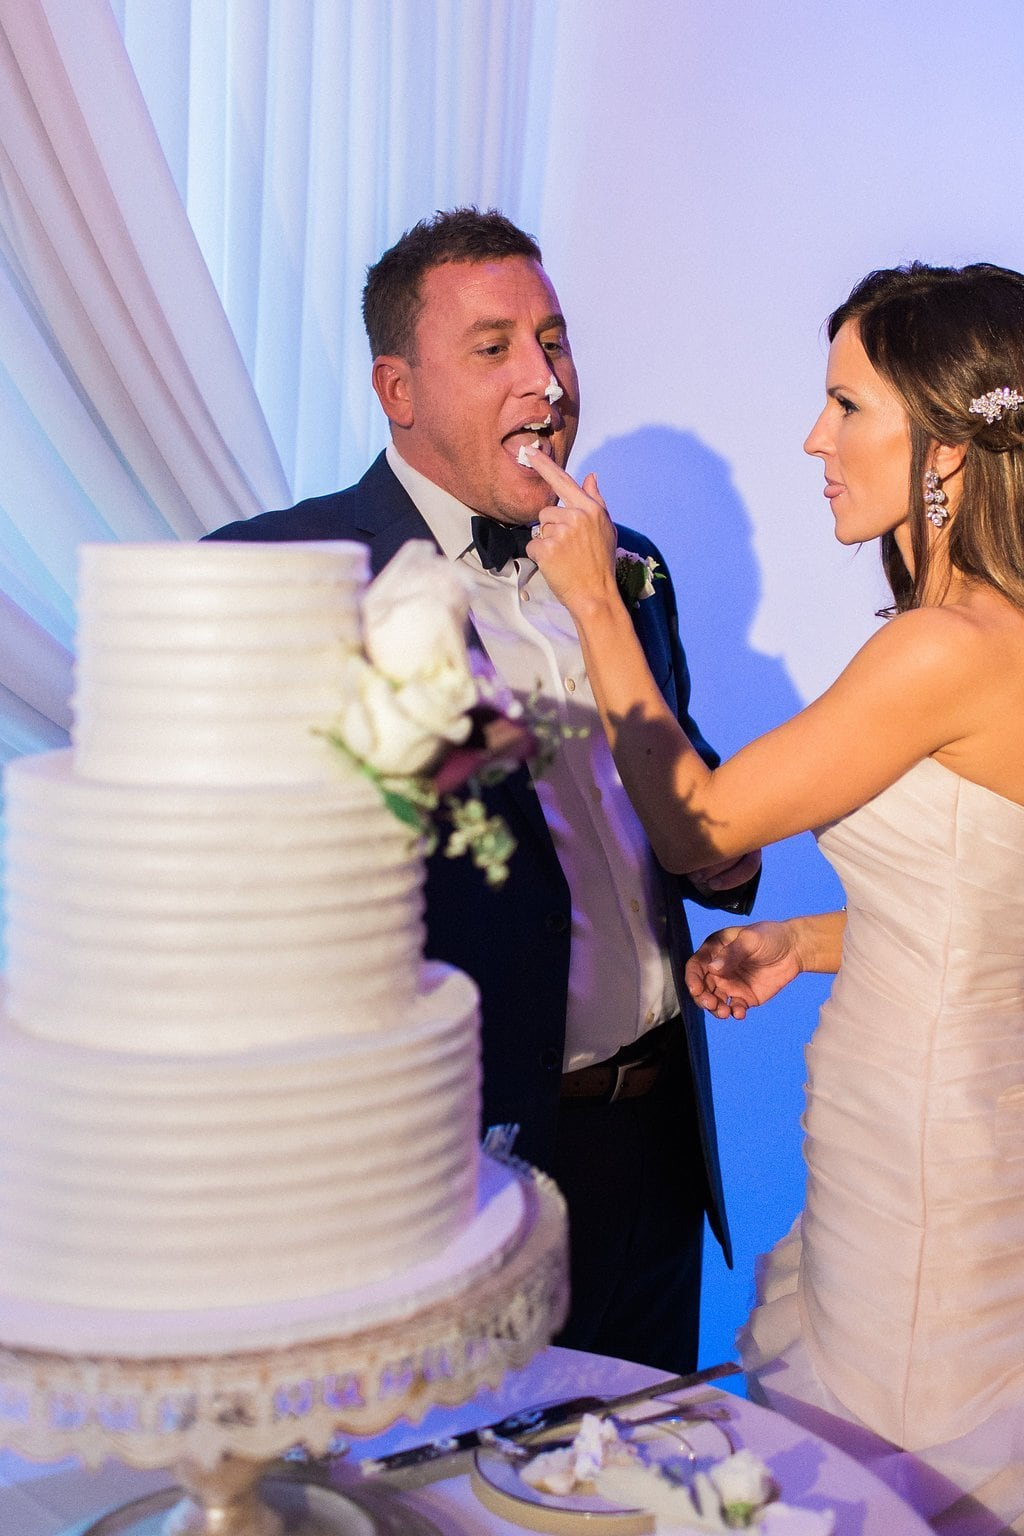 Bride and Groom cutting their wedding cake at their reception - J Verno Studios Winter Wedding